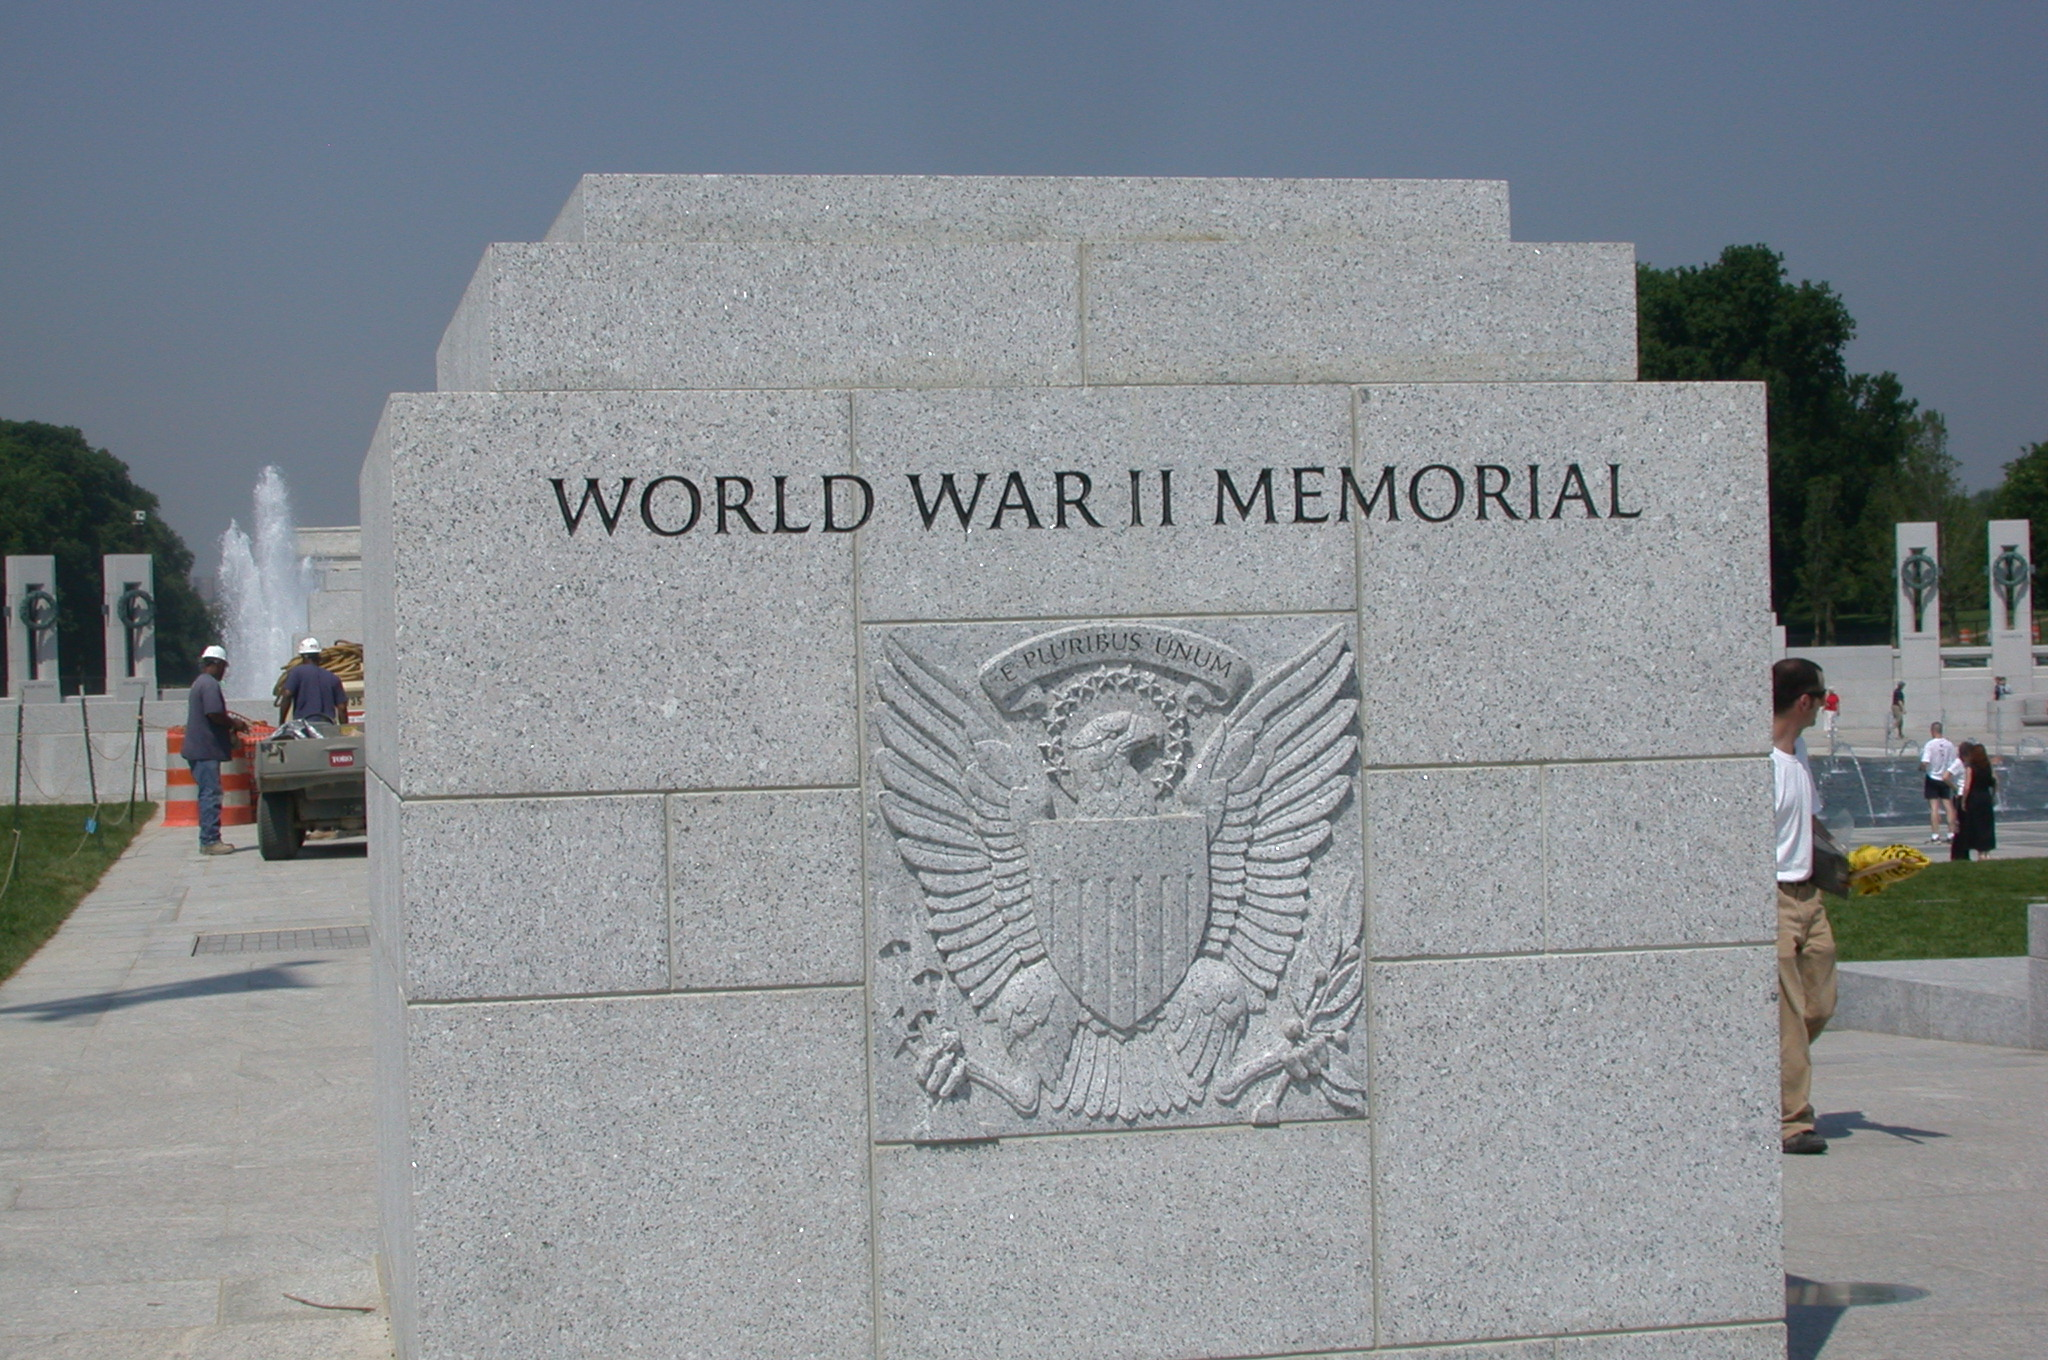 DSCN0048.jpg - ...WW II memorial...